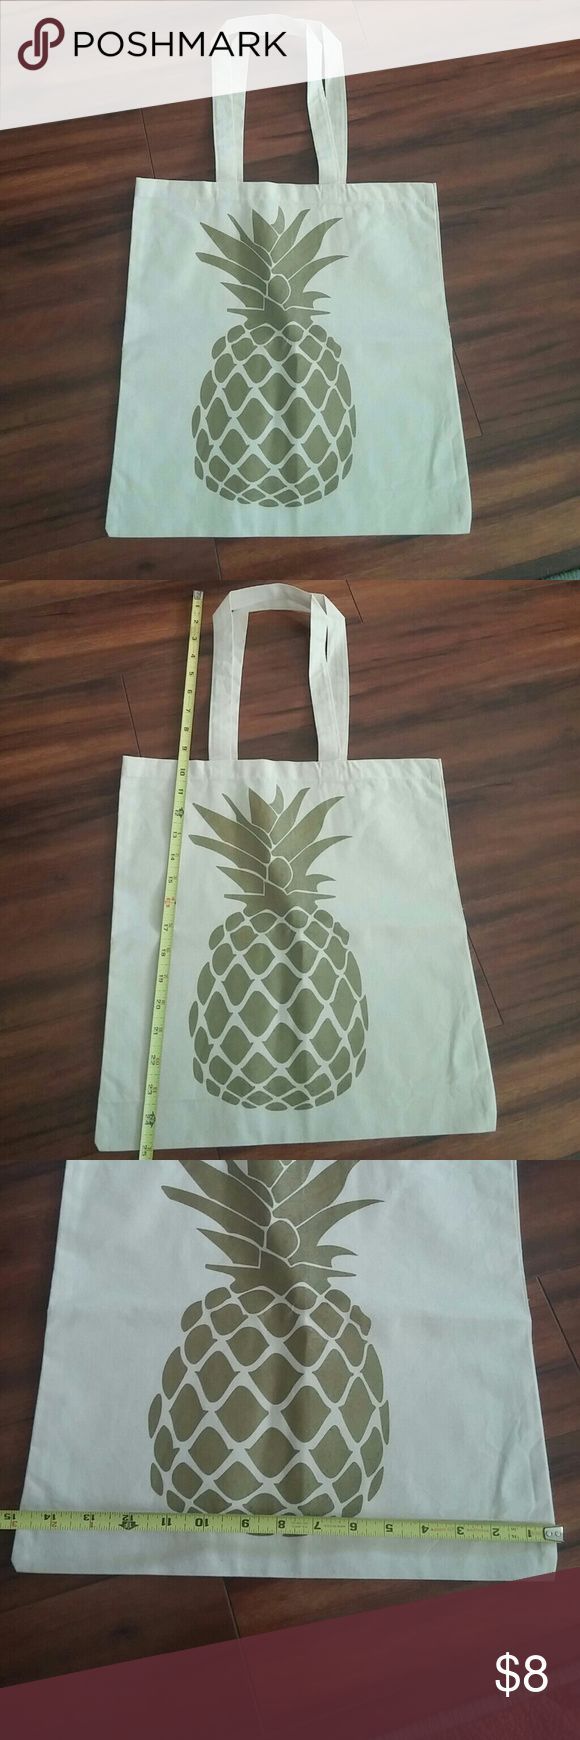 NWOT Pineapple tote! Gold pineapple on cream tote bag! 100% cotton Bags Totes